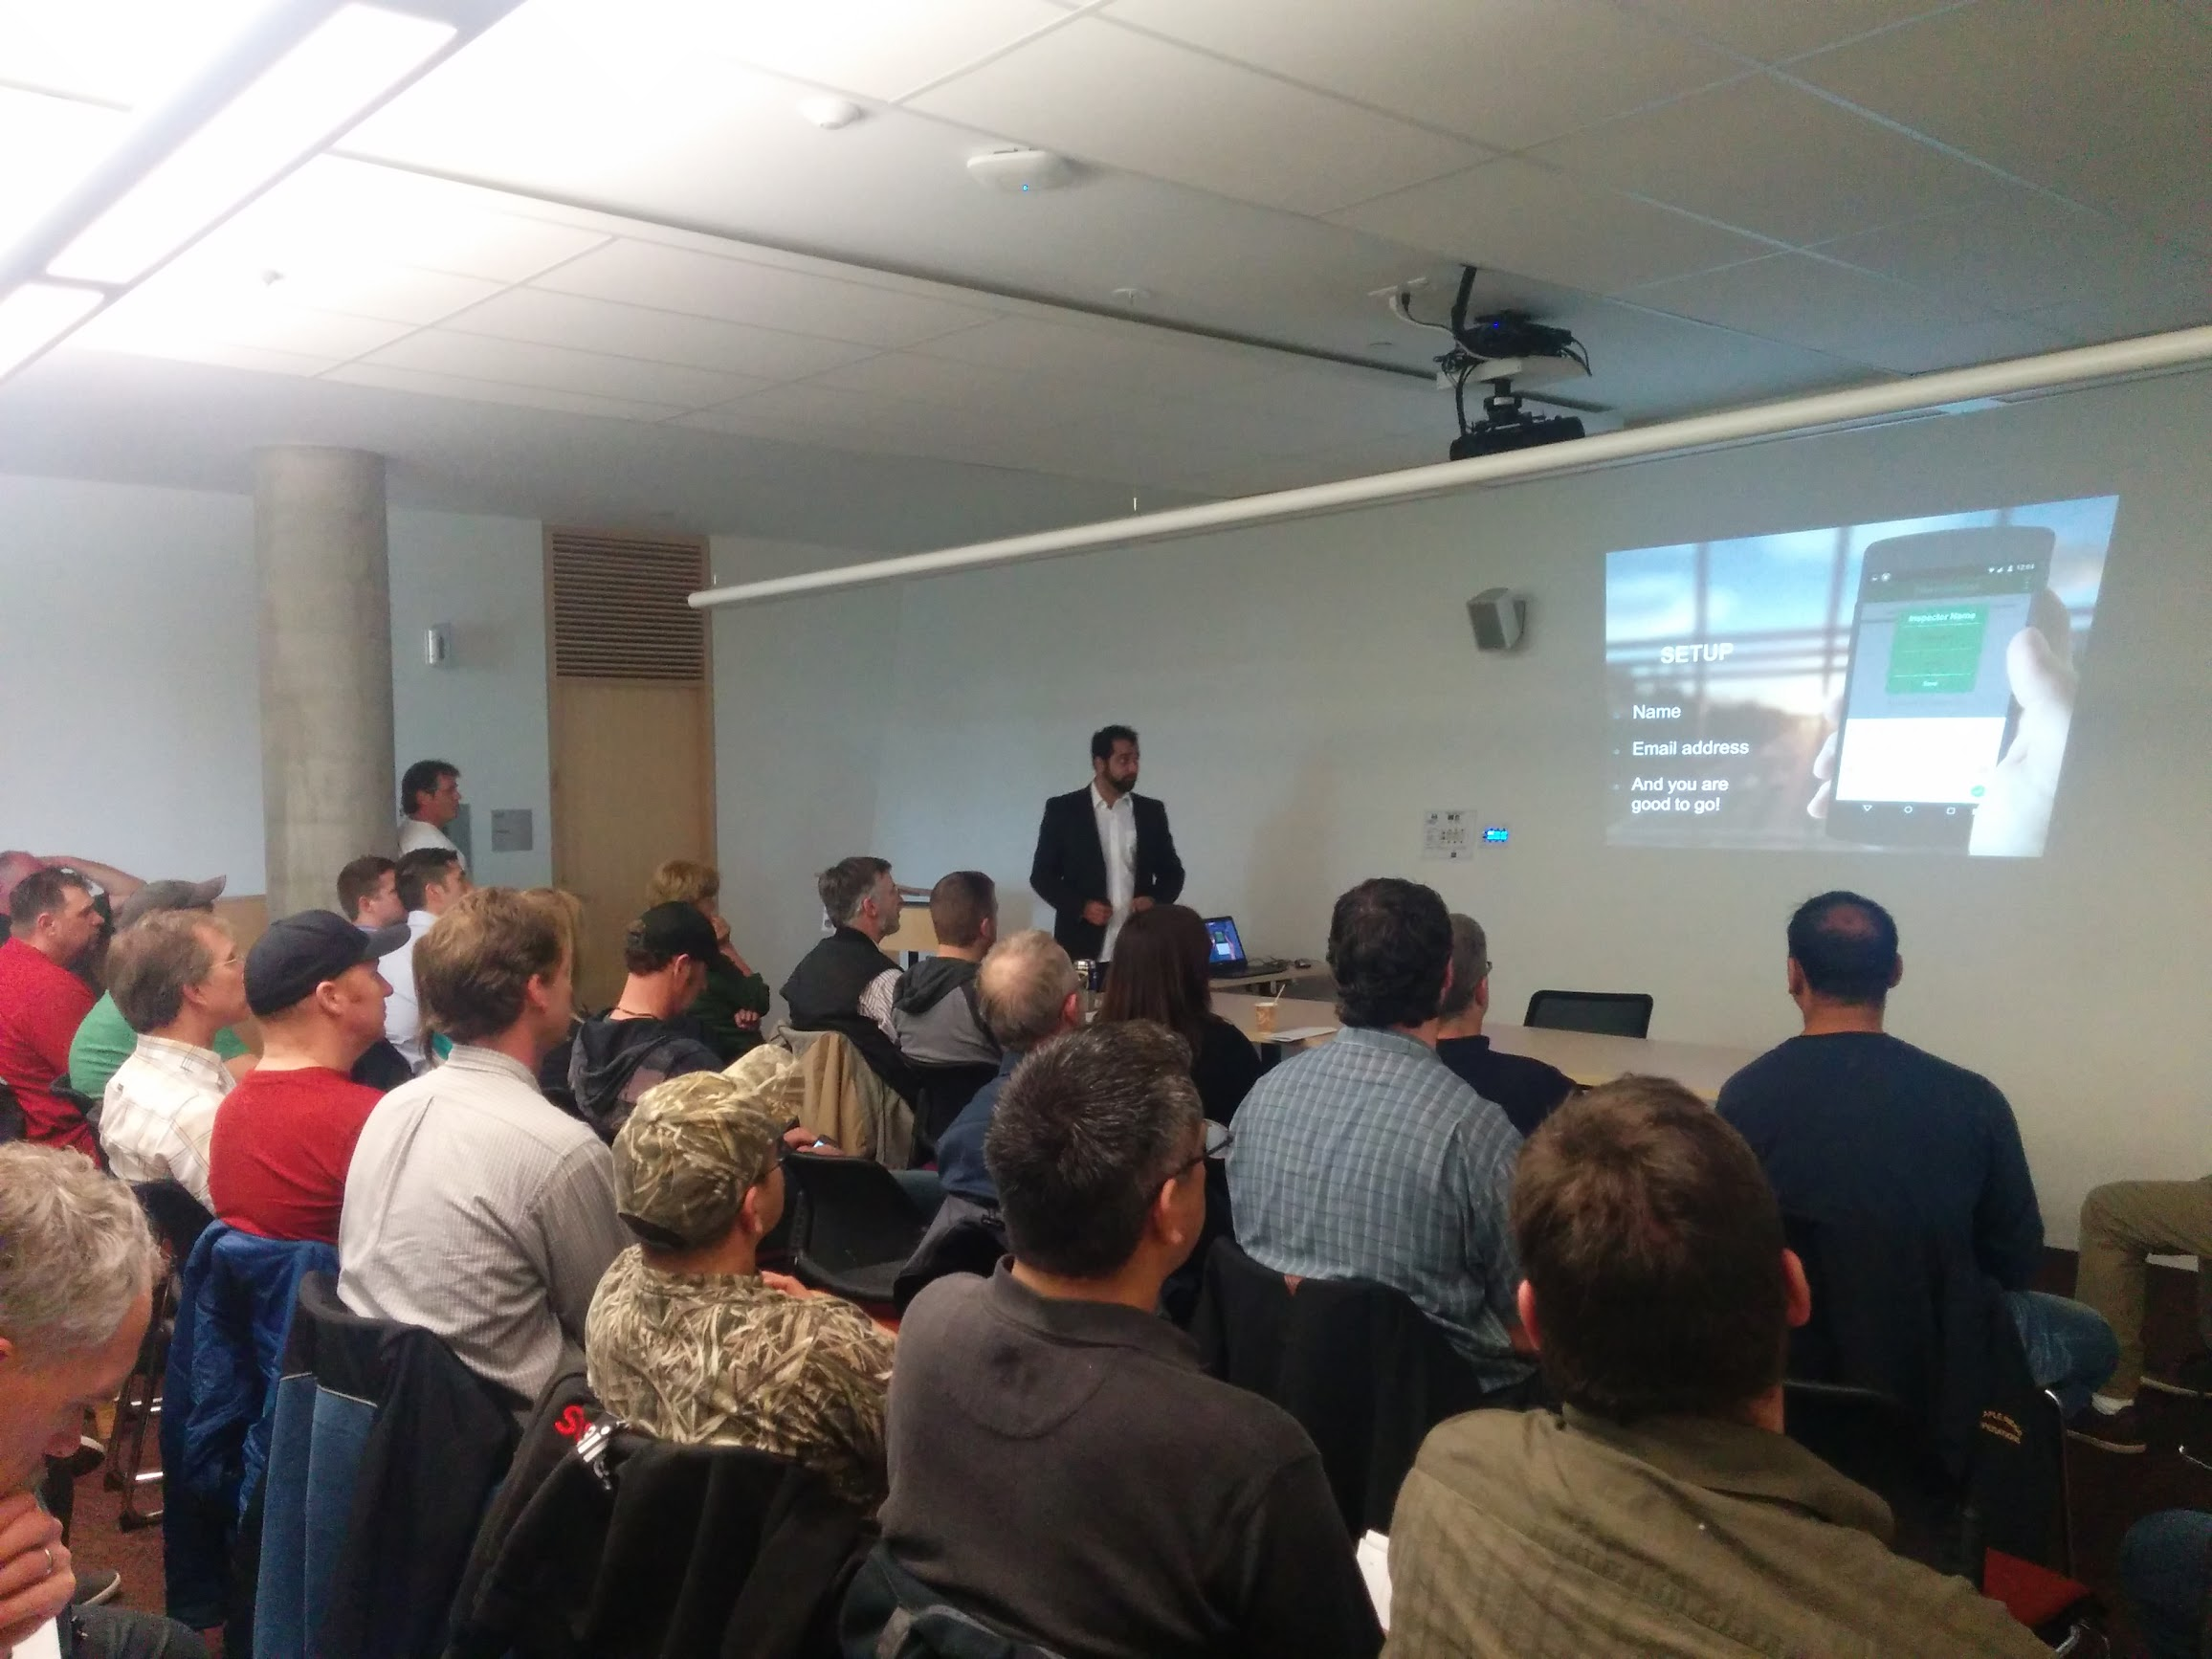 Sam & Rohit demonstrating (training) Dike Inspectors on how to use the Dike Inspection app